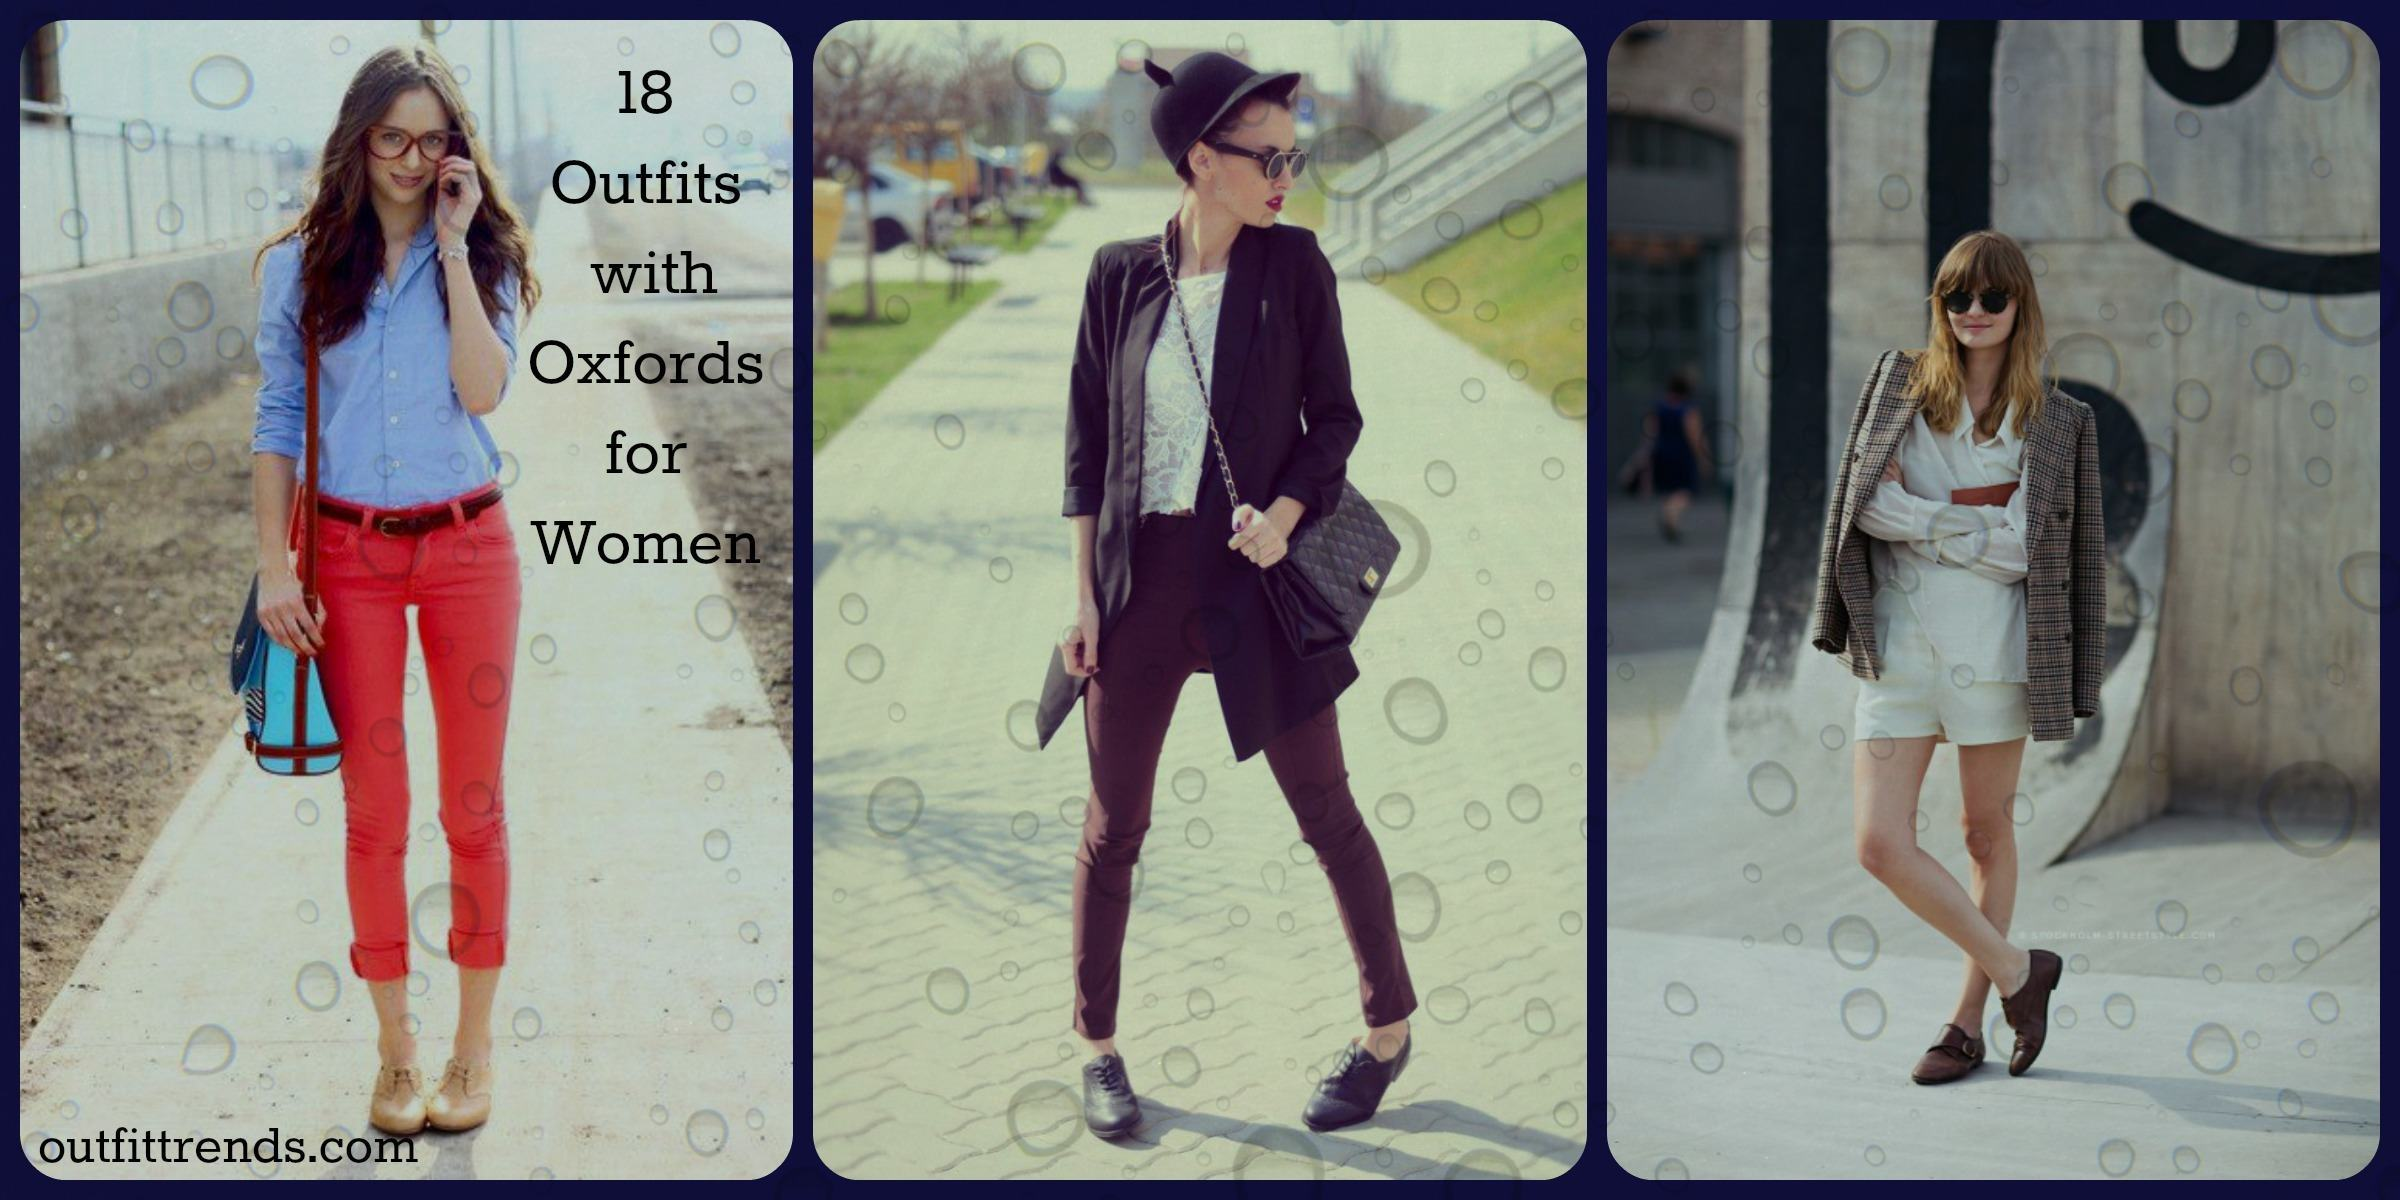 Women Outfits with Oxford Shoes-18 Ways to Style Oxfords